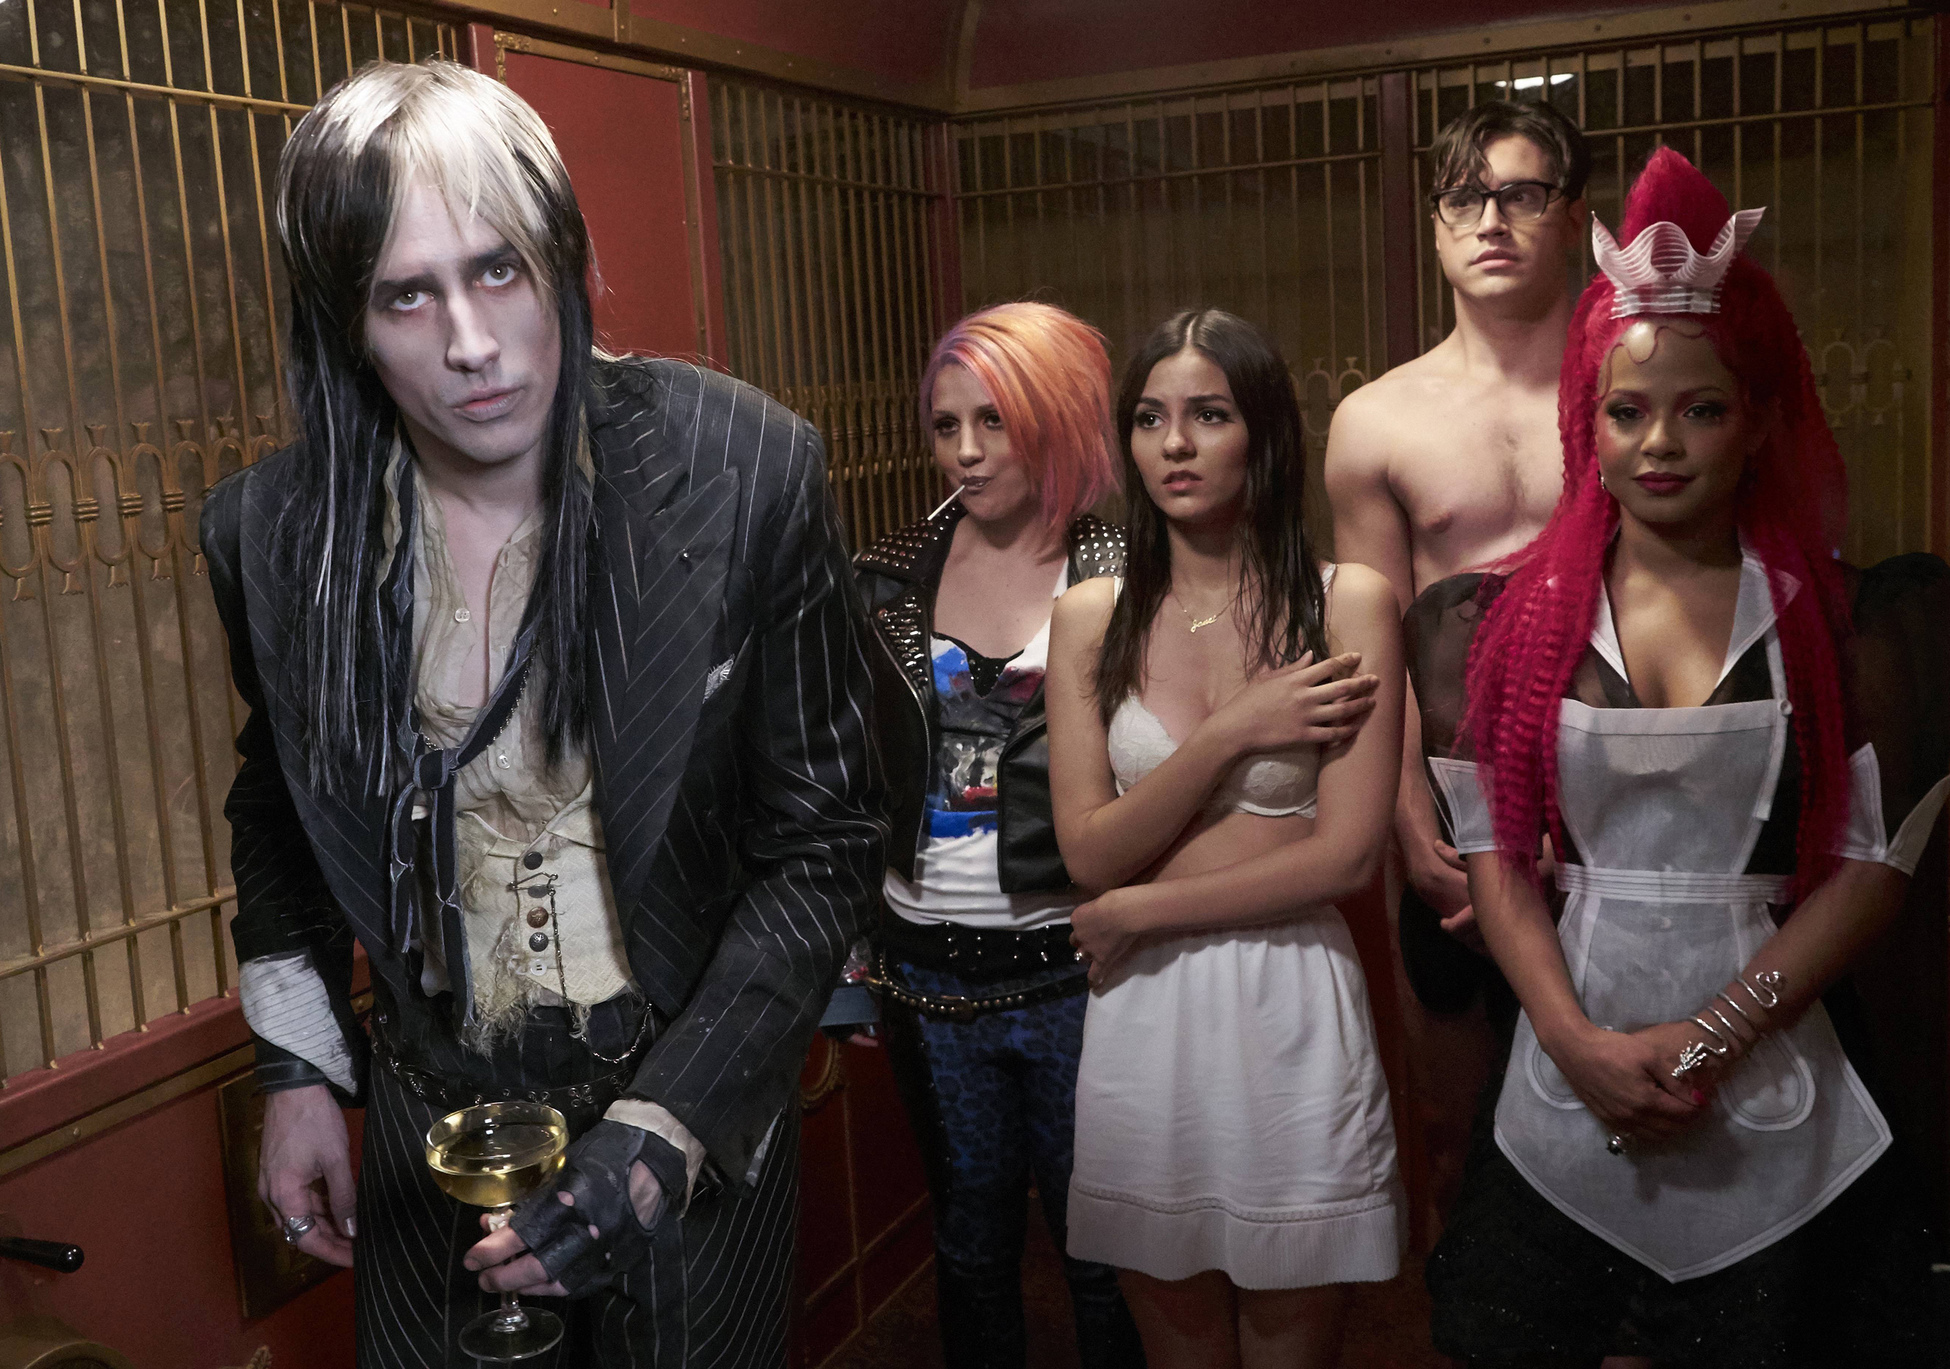 bcfa737b8b9 TV Review: The Rocky Horror Picture Show: Let's Do The Time Warp Again